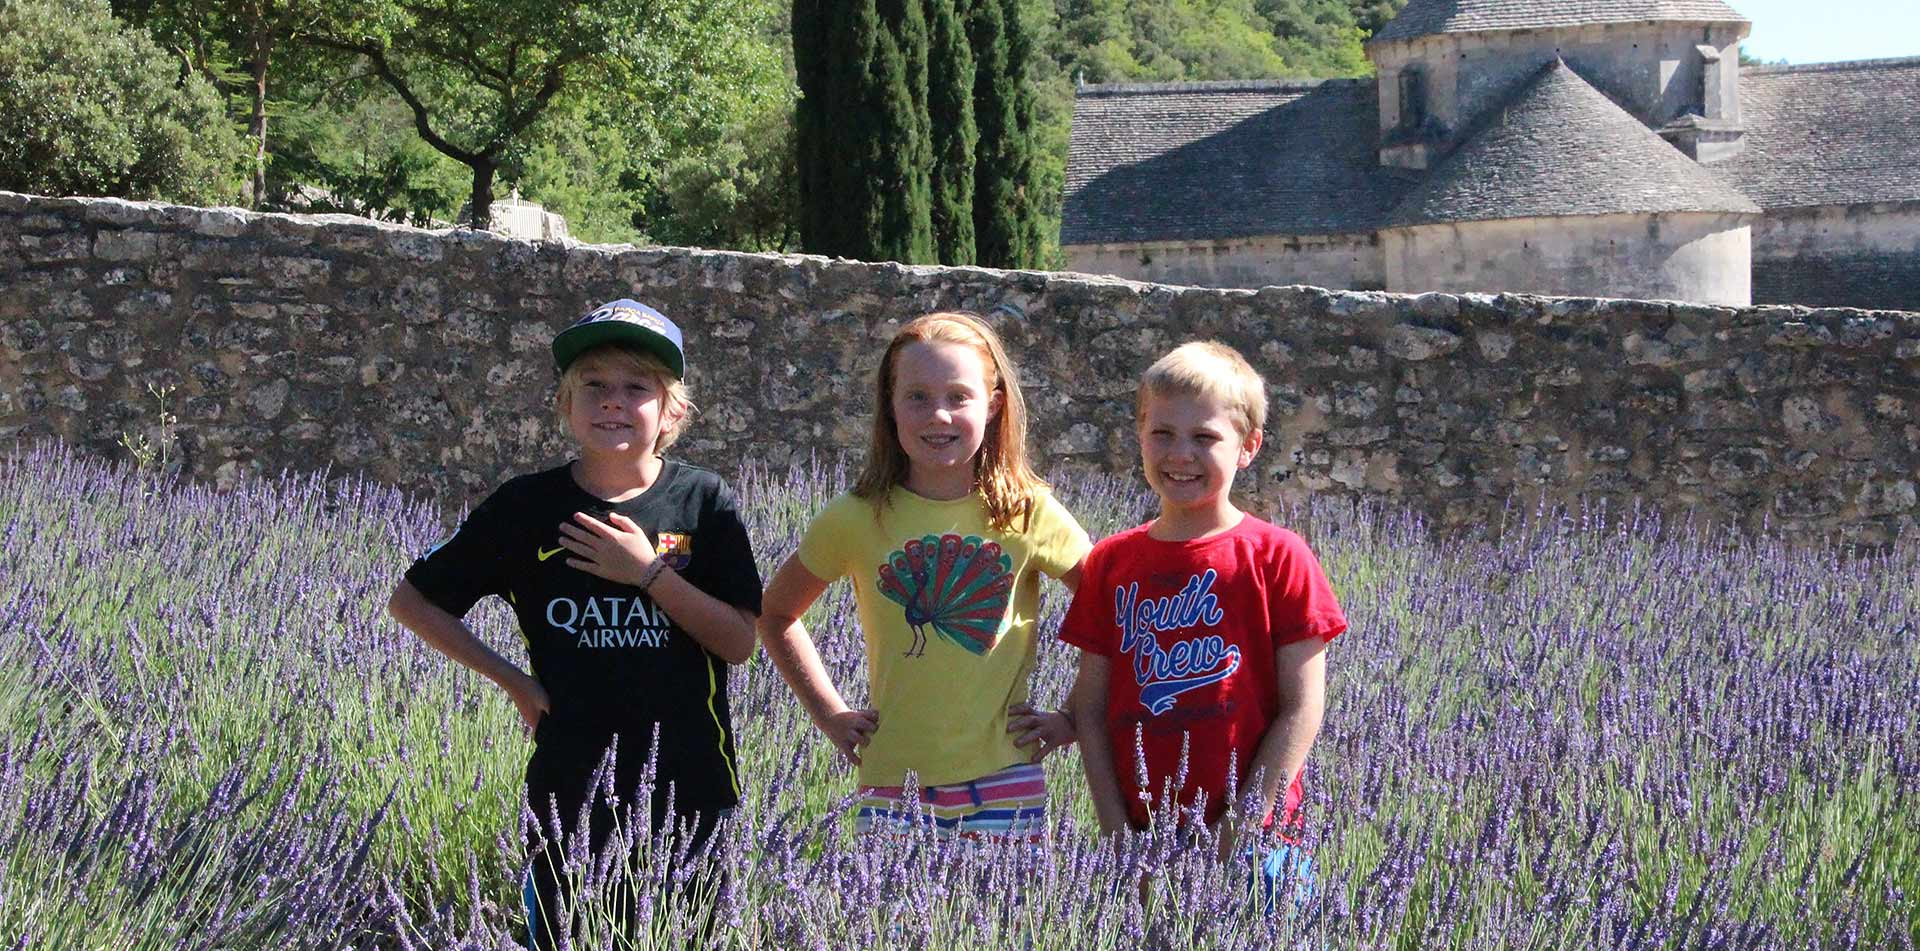 Europe France Provence children smiling in lavender fields in Luberon Regional Nature Park - luxury vacation destinations